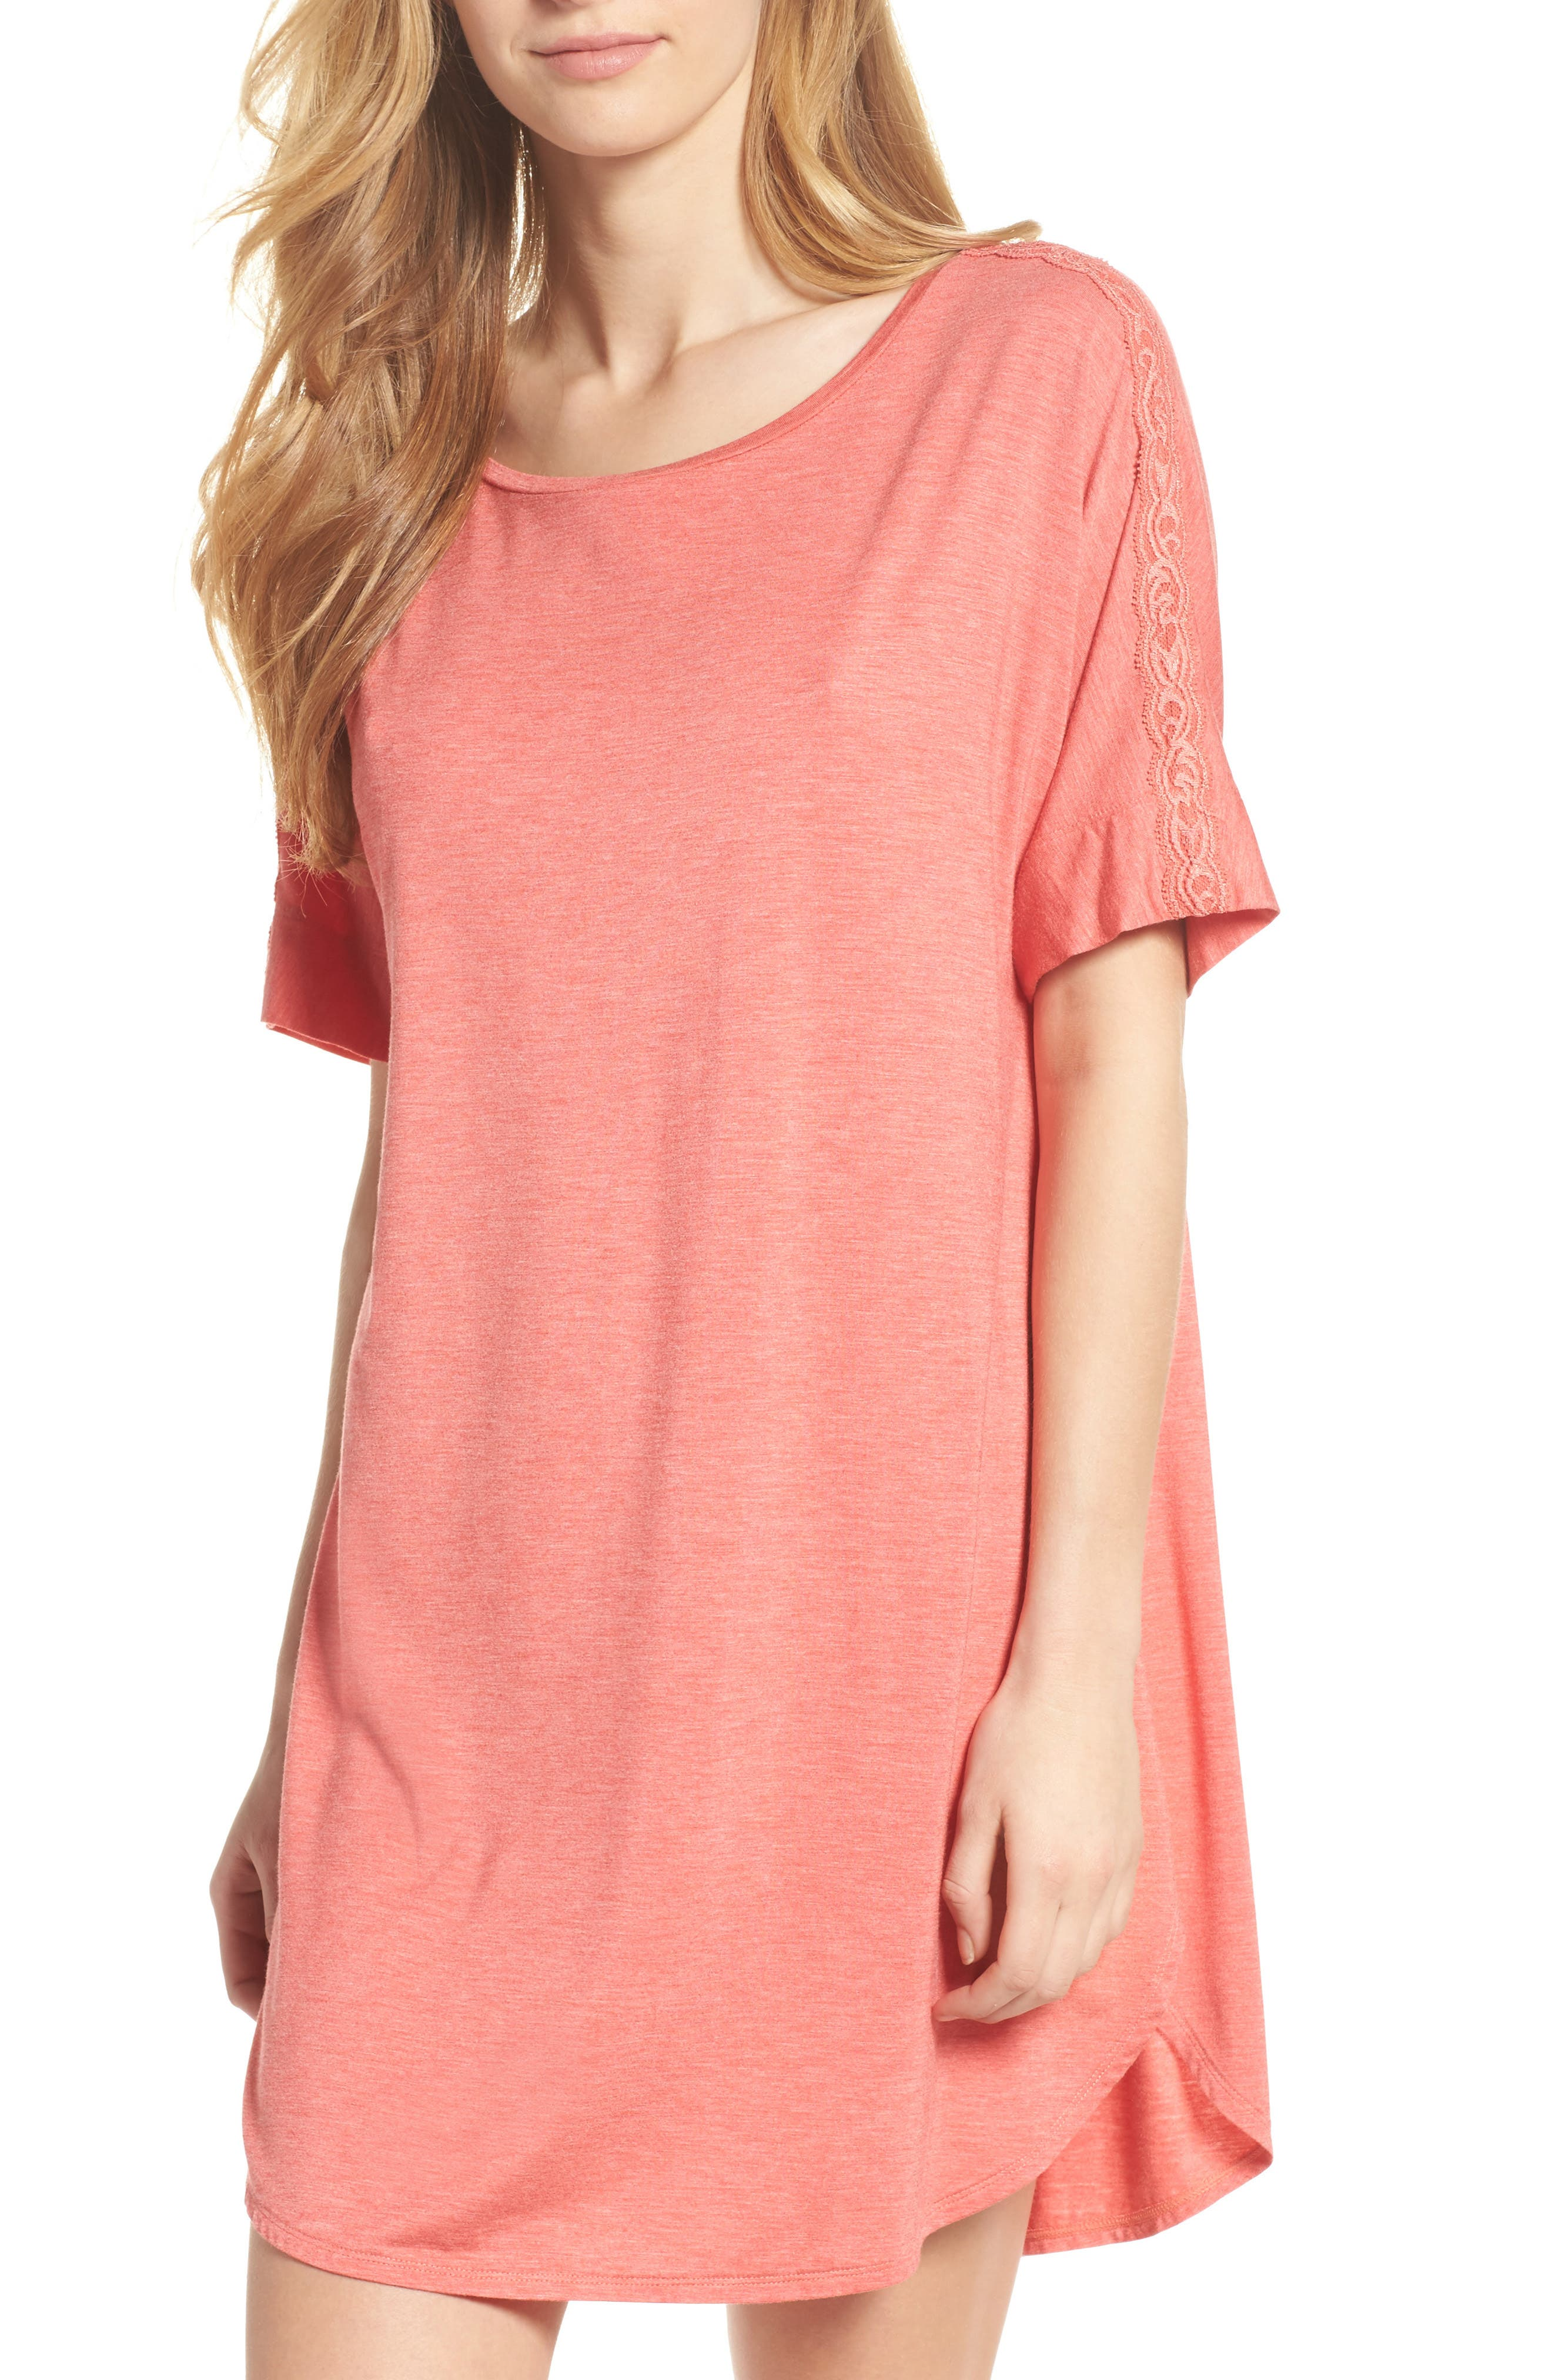 Feathers Essential Sleep Shirt,                         Main,                         color, Coral